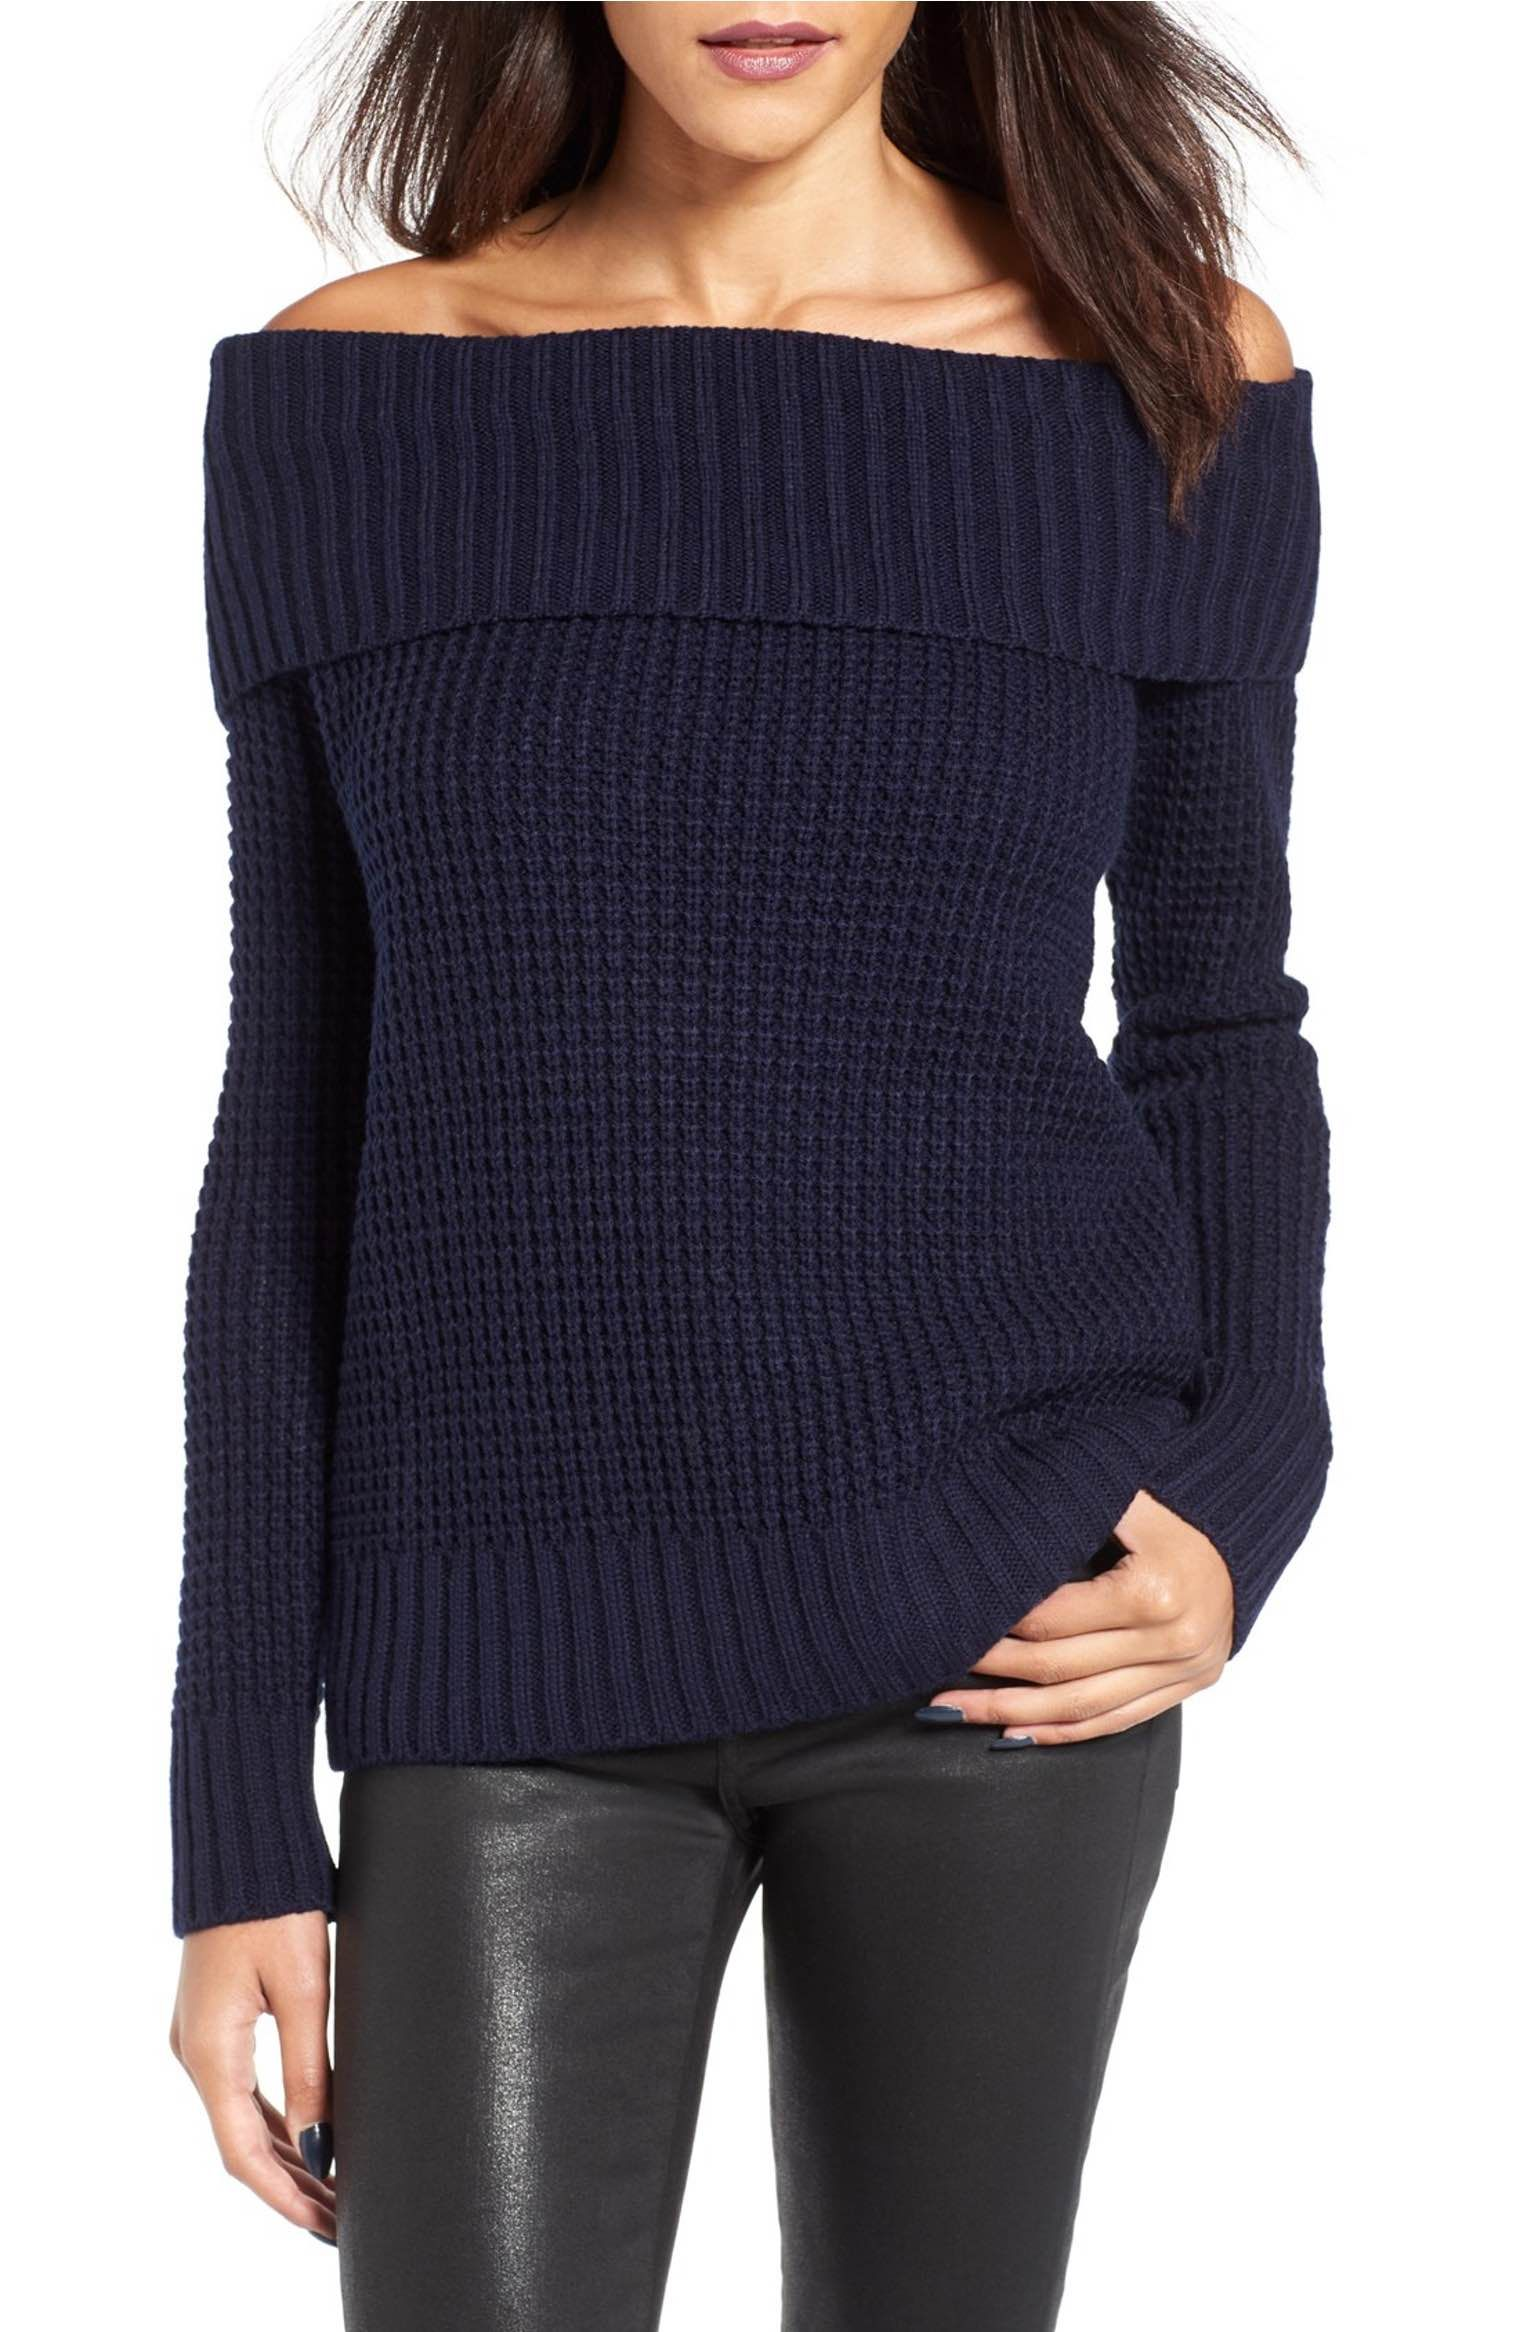 Main Image - BP. Off the Shoulder Sweater | Fashion | Pinterest ...